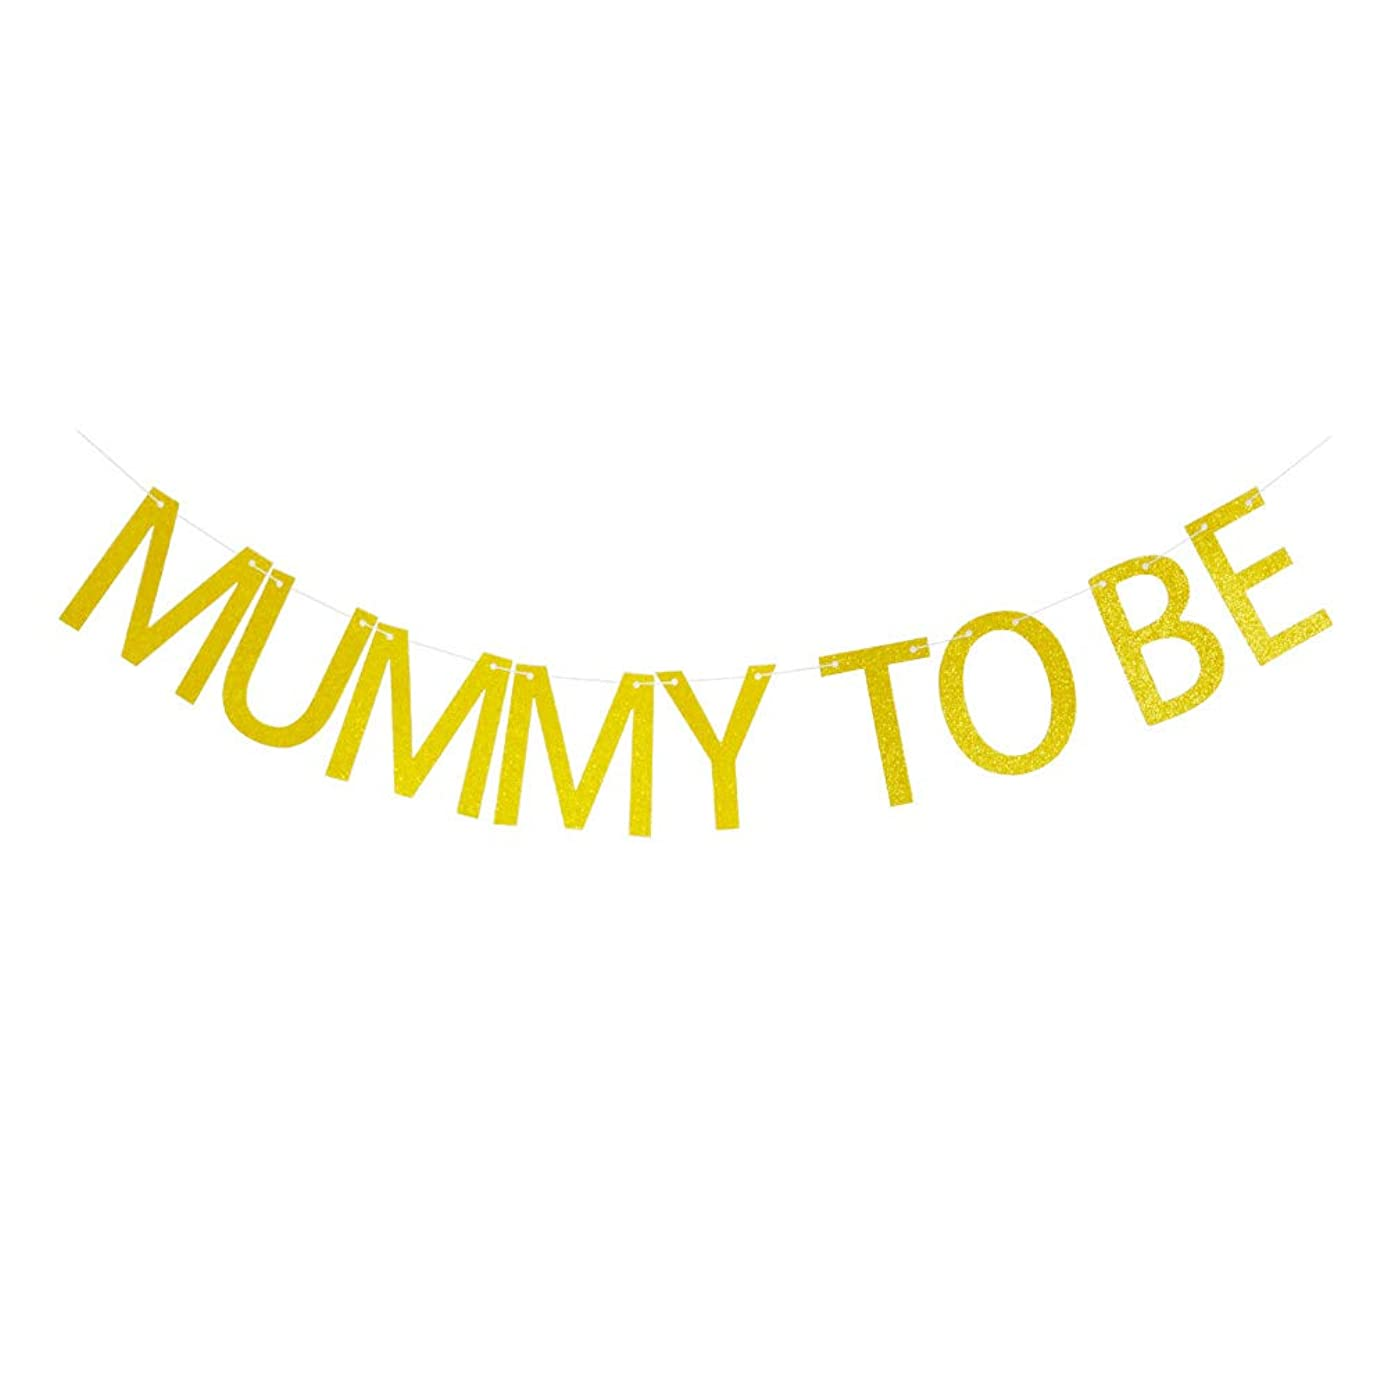 Mummy to Be Gold Glitter Banner for Baby Shower Party Decorations